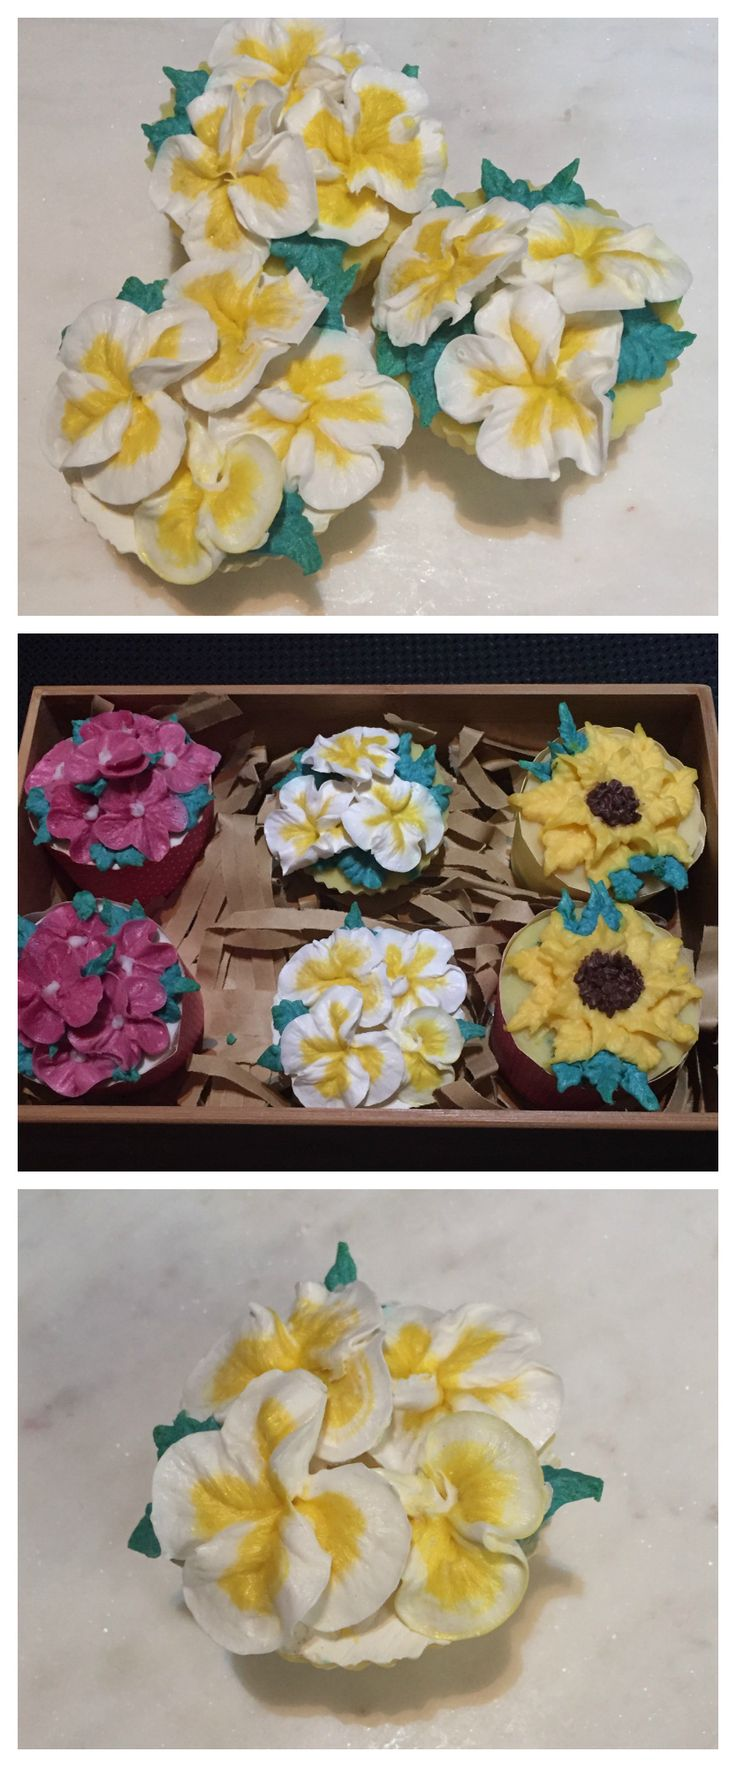 Handmade cupcake flower soaps.  https://www.littleaussiegems.com.au/collections/favours/products/handmade-frangipanni-cupcake-soaps-1